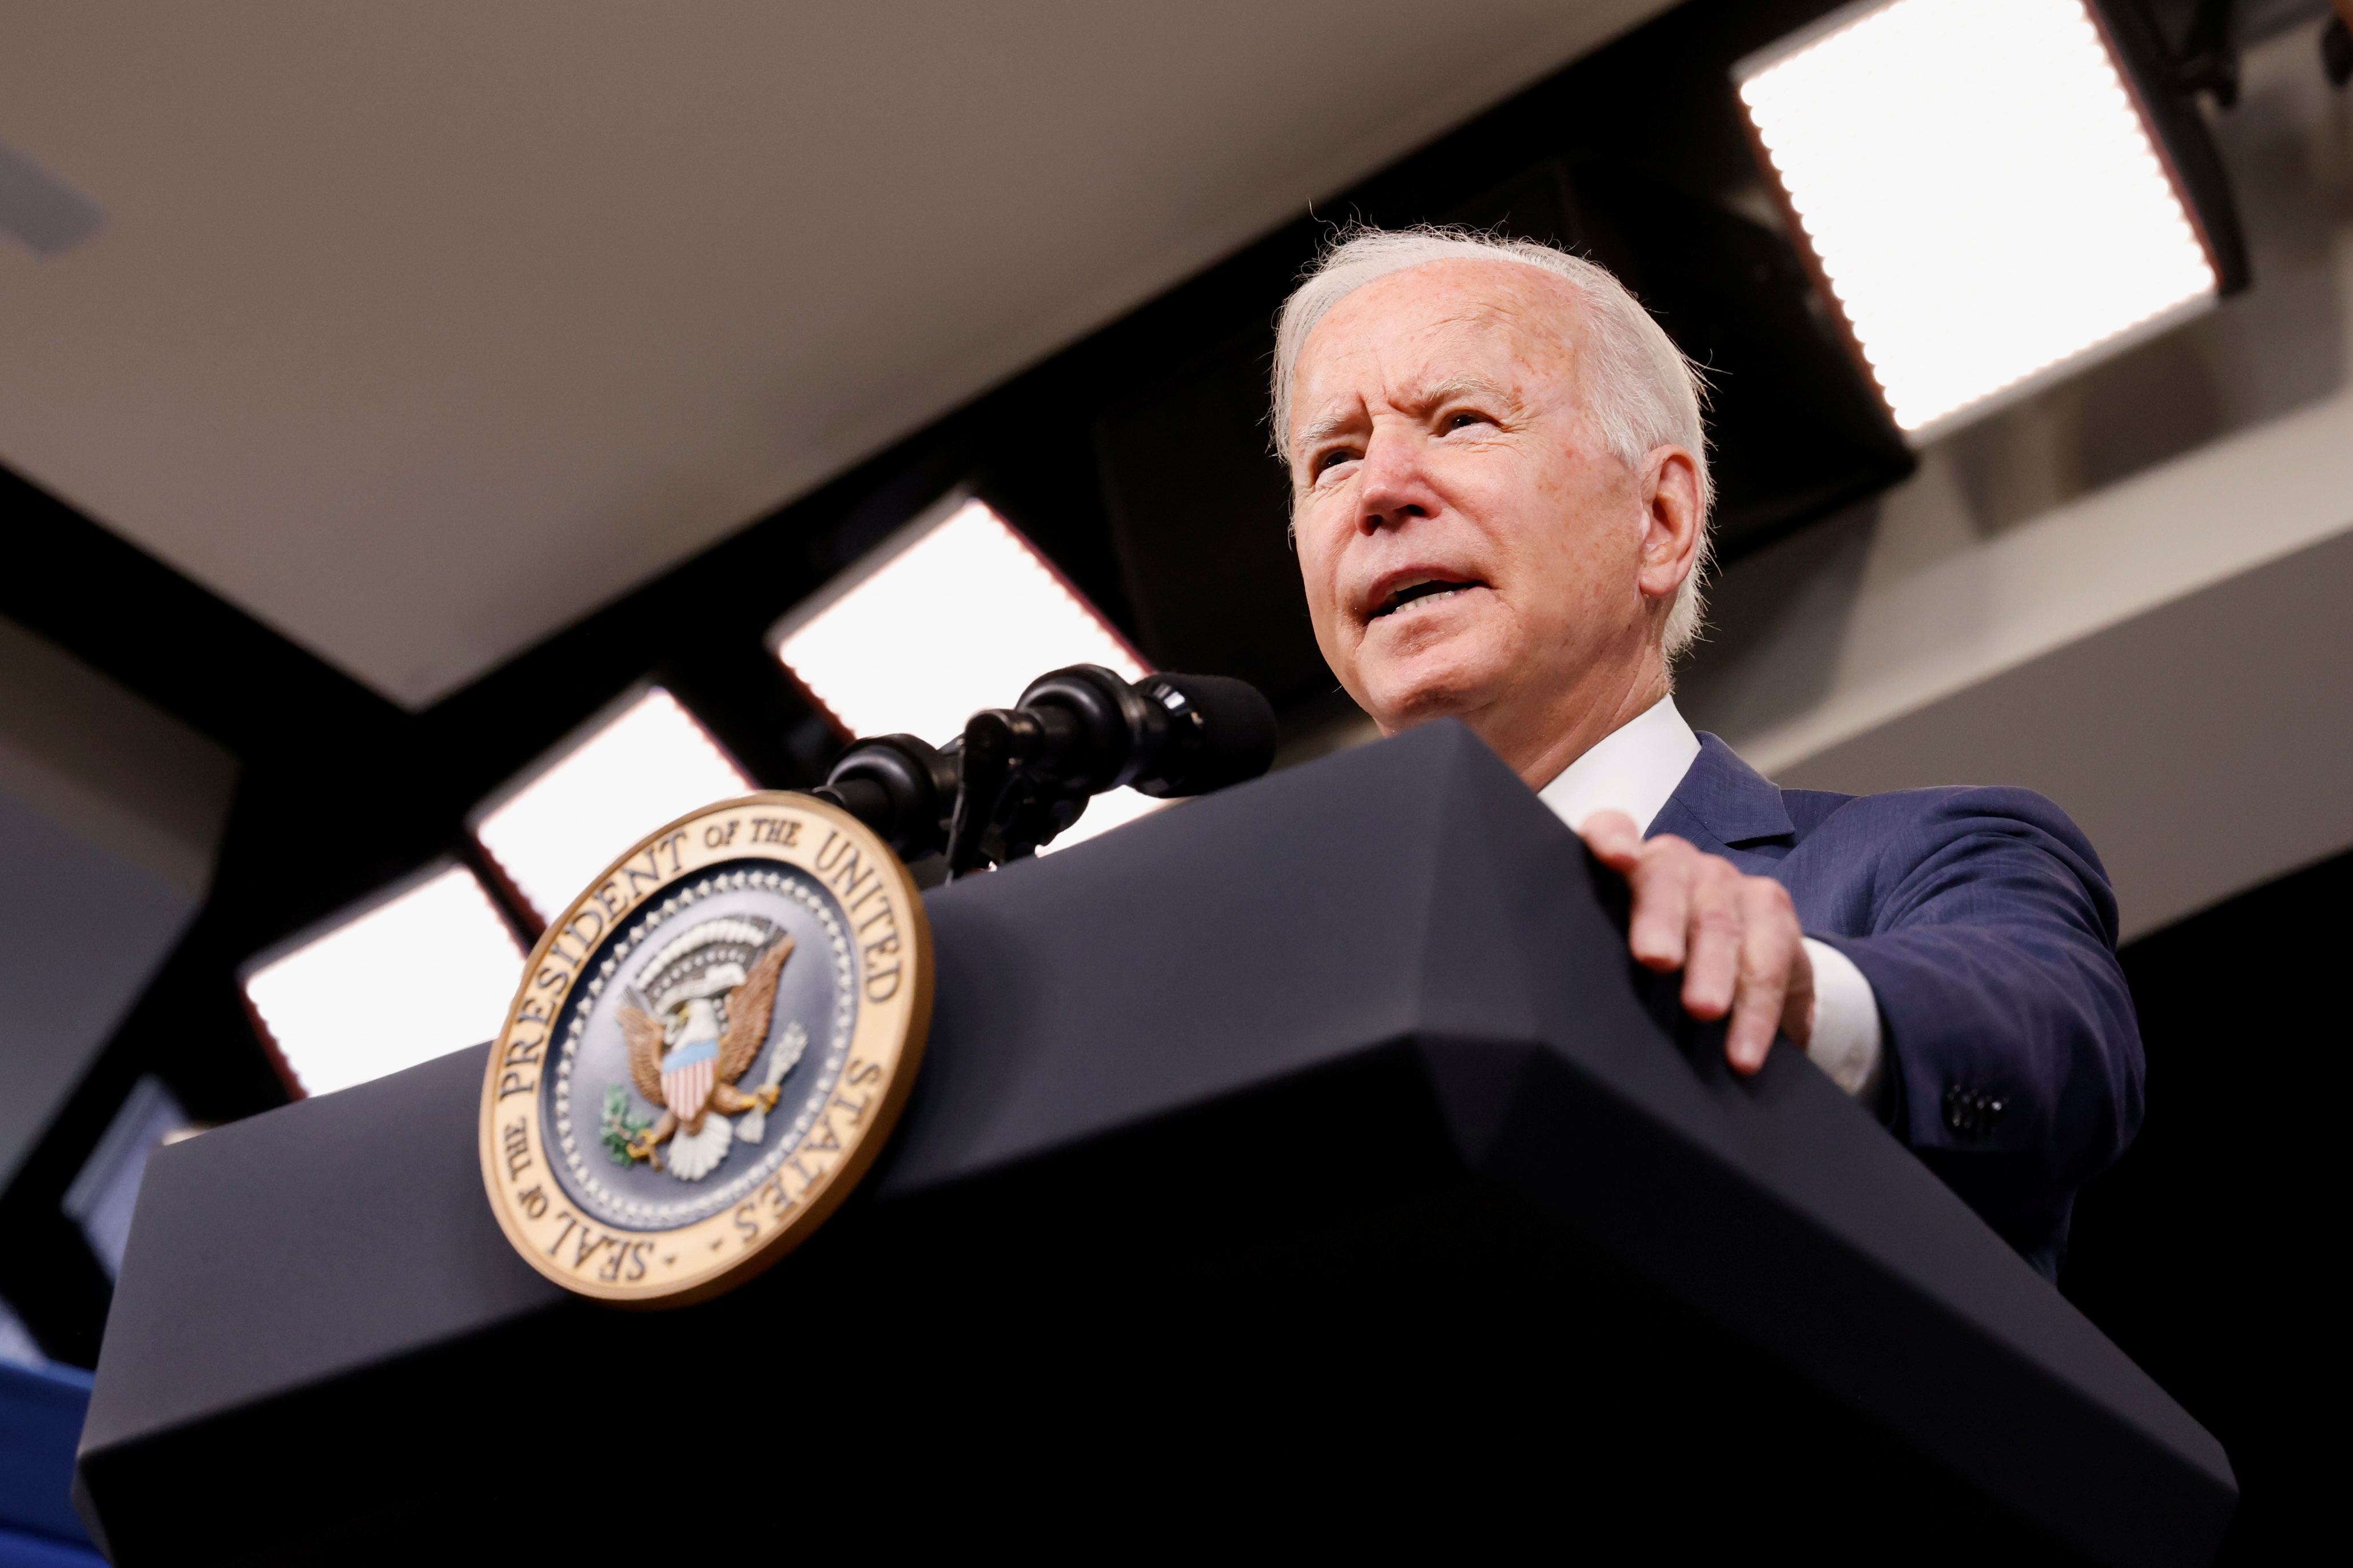 U.S. President Joe Biden delivers remarks on response in the aftermath of Hurricane Ida from the Eisenhower Executive Office Building on the White House campus in Washington, U.S. September 2, 2021. REUTERS/Jonathan Ernst